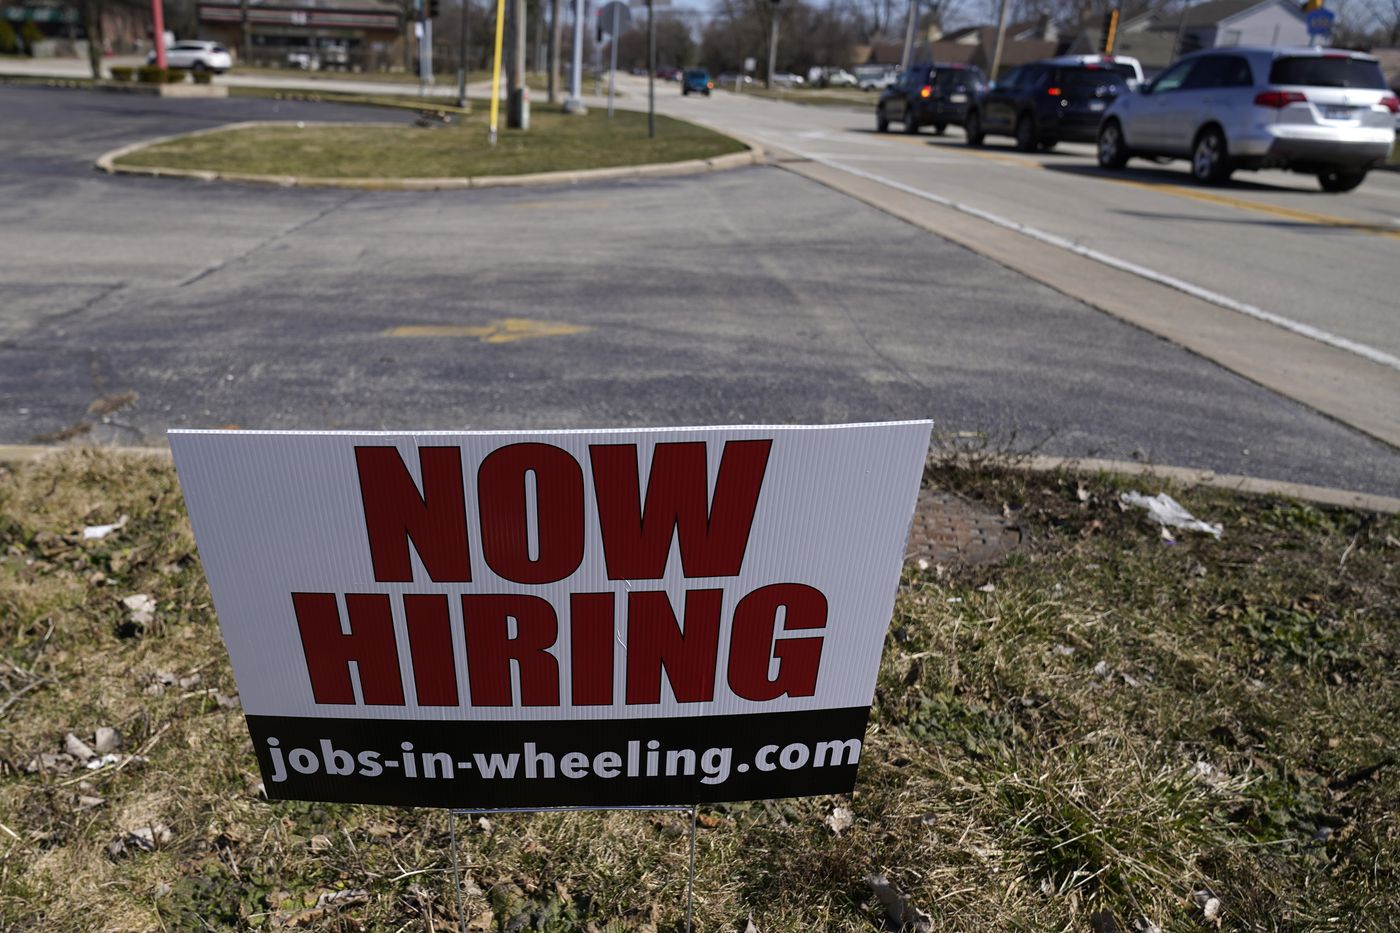 LIVE: Biden discusses employment; US job growth slows sharply in sign of struggles